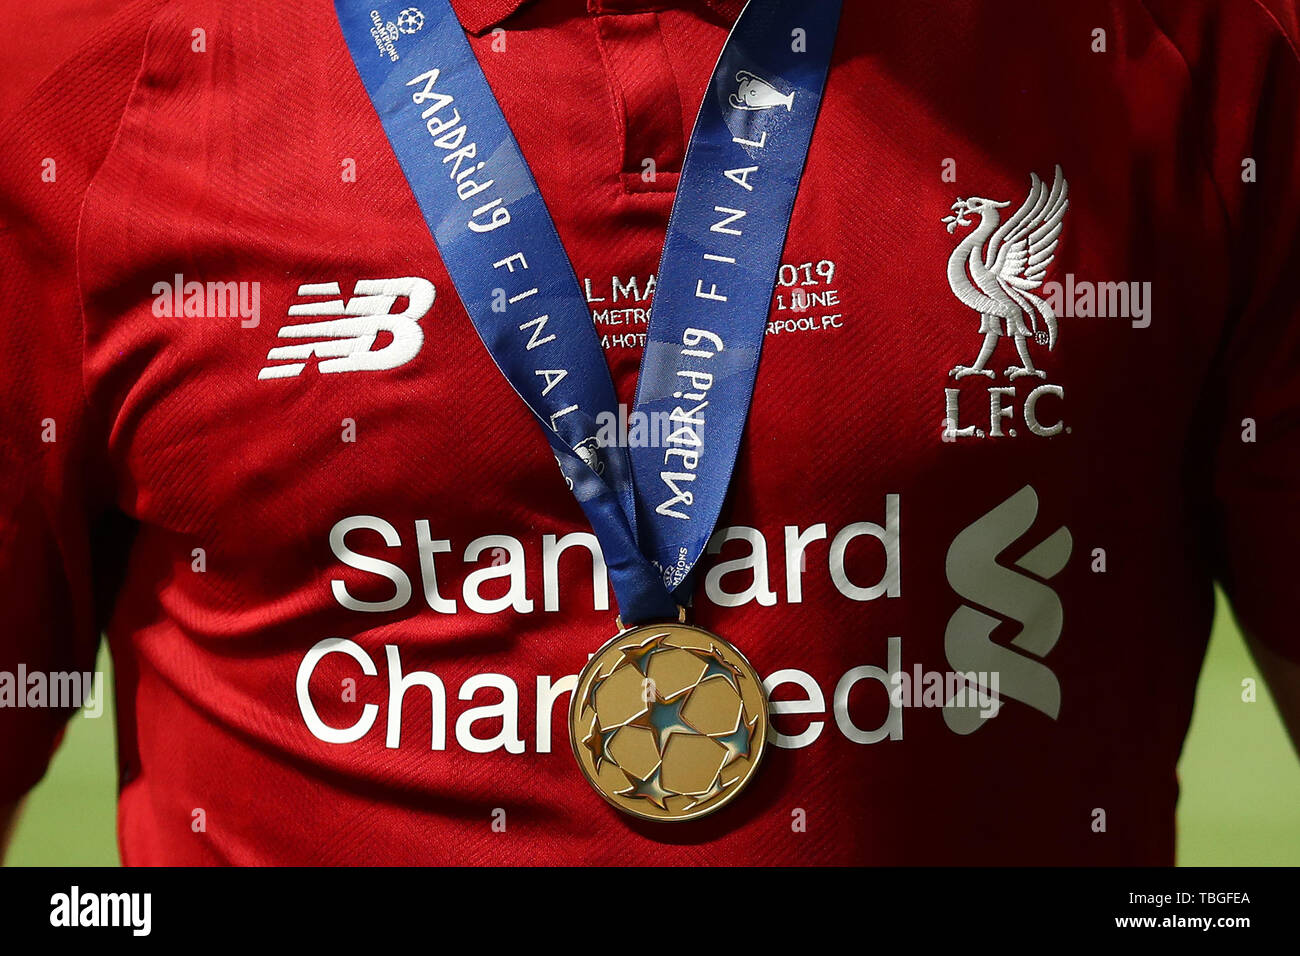 mohamed salah of liverpool winners medal and shirt detail tottenham hotspur v liverpool uefa champions league final 2019 wanda metropolitano stadium madrid 1st june 2019 stock photo alamy https www alamy com mohamed salah of liverpool winners medal and shirt detail tottenham hotspur v liverpool uefa champions league final 2019 wanda metropolitano stadium madrid 1st june 2019 image248069762 html